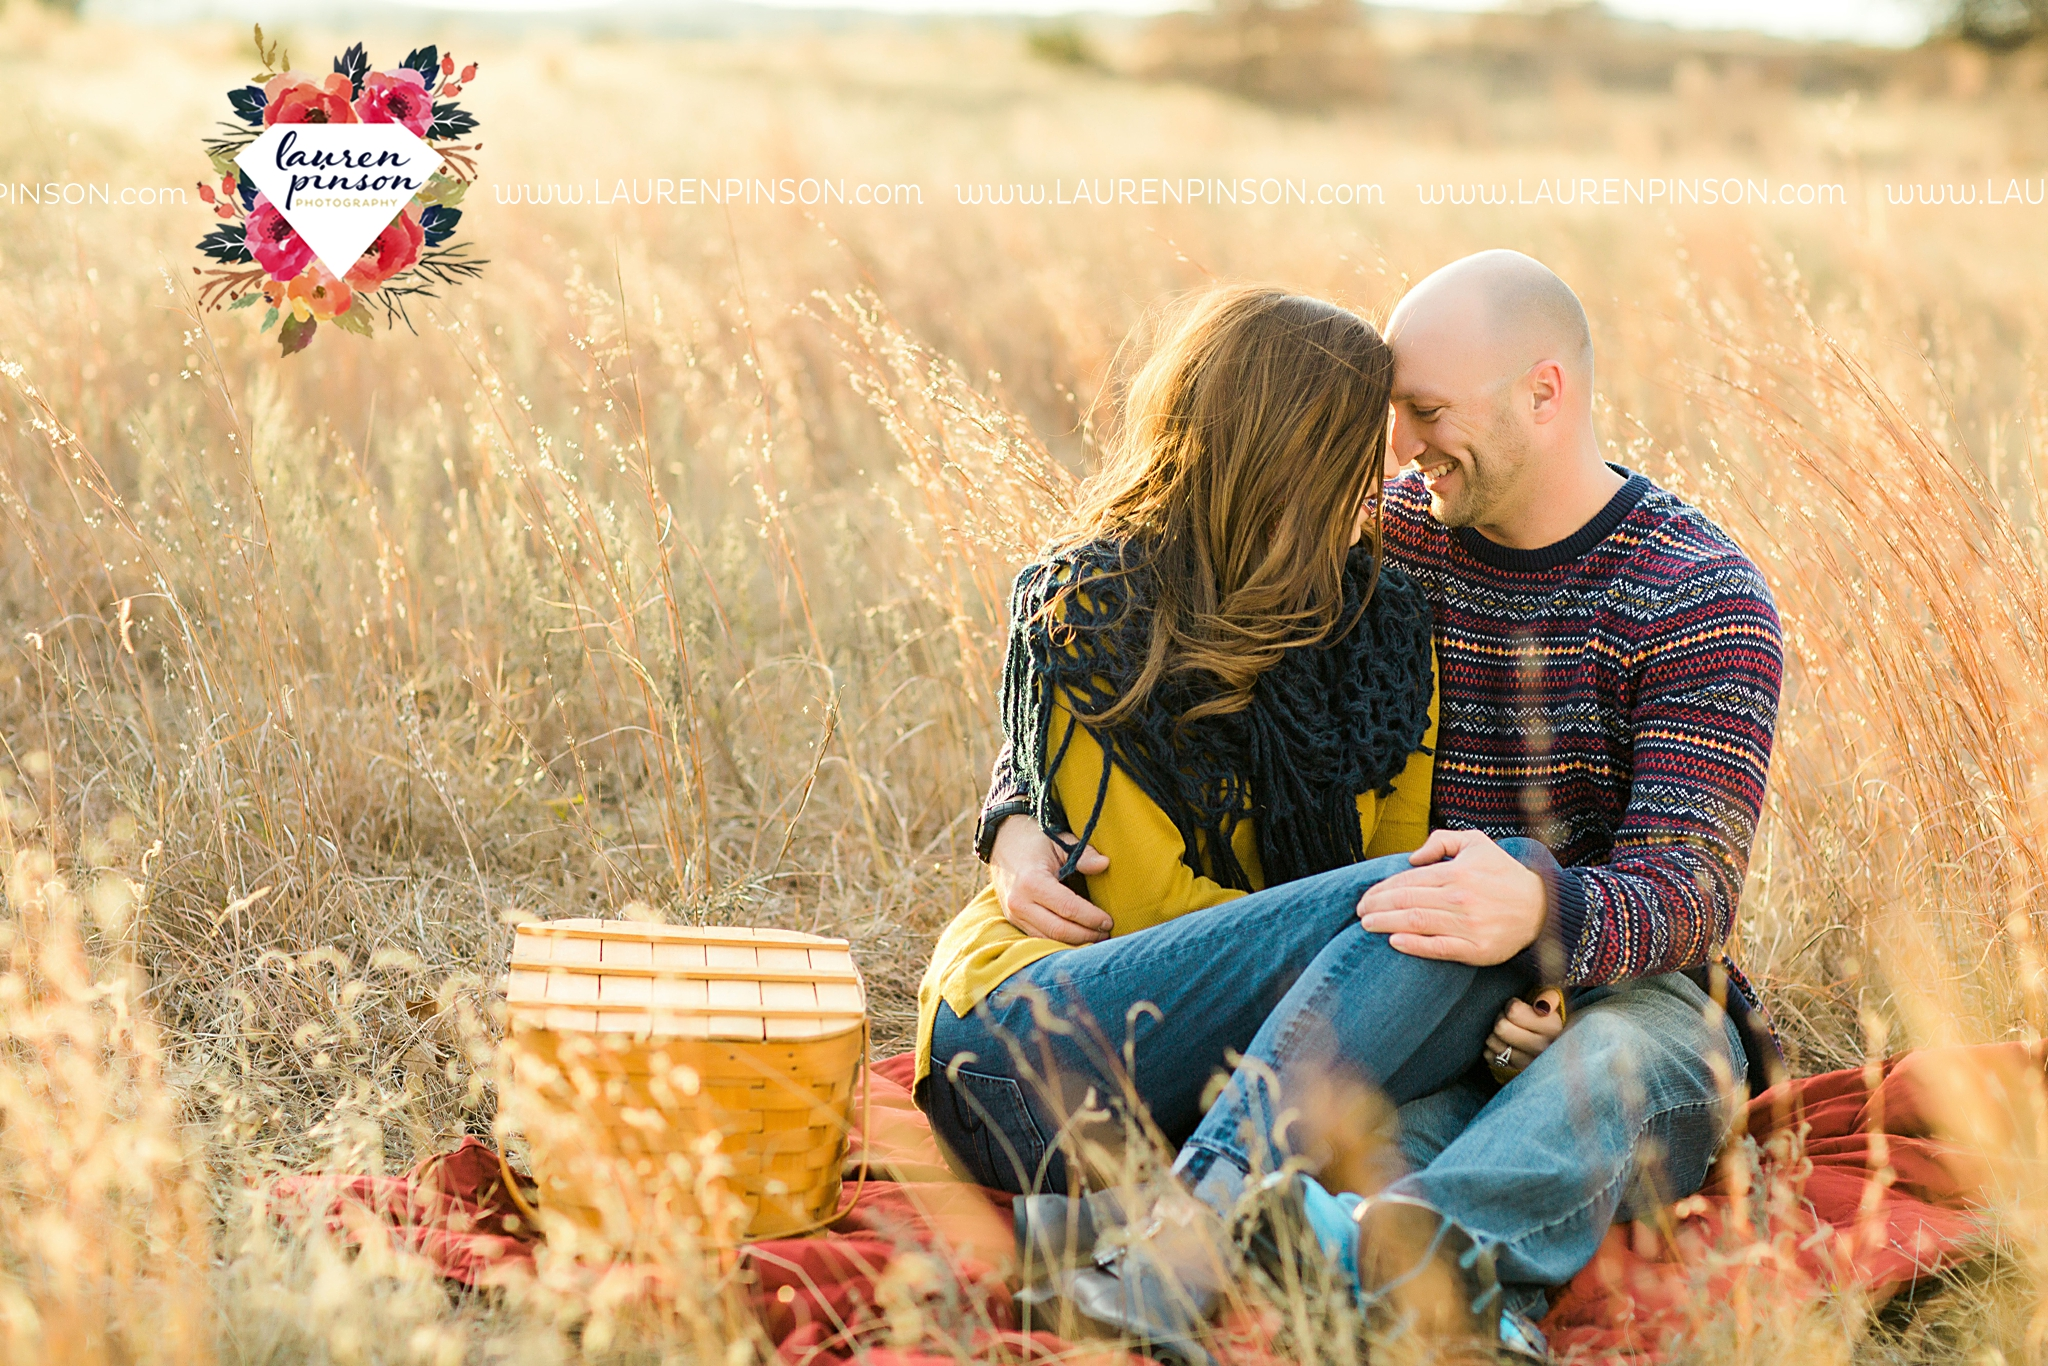 wichita-falls-texas-photographer-burkburnett-engagement-session-wichita-mountains-police-officer_4135.jpg